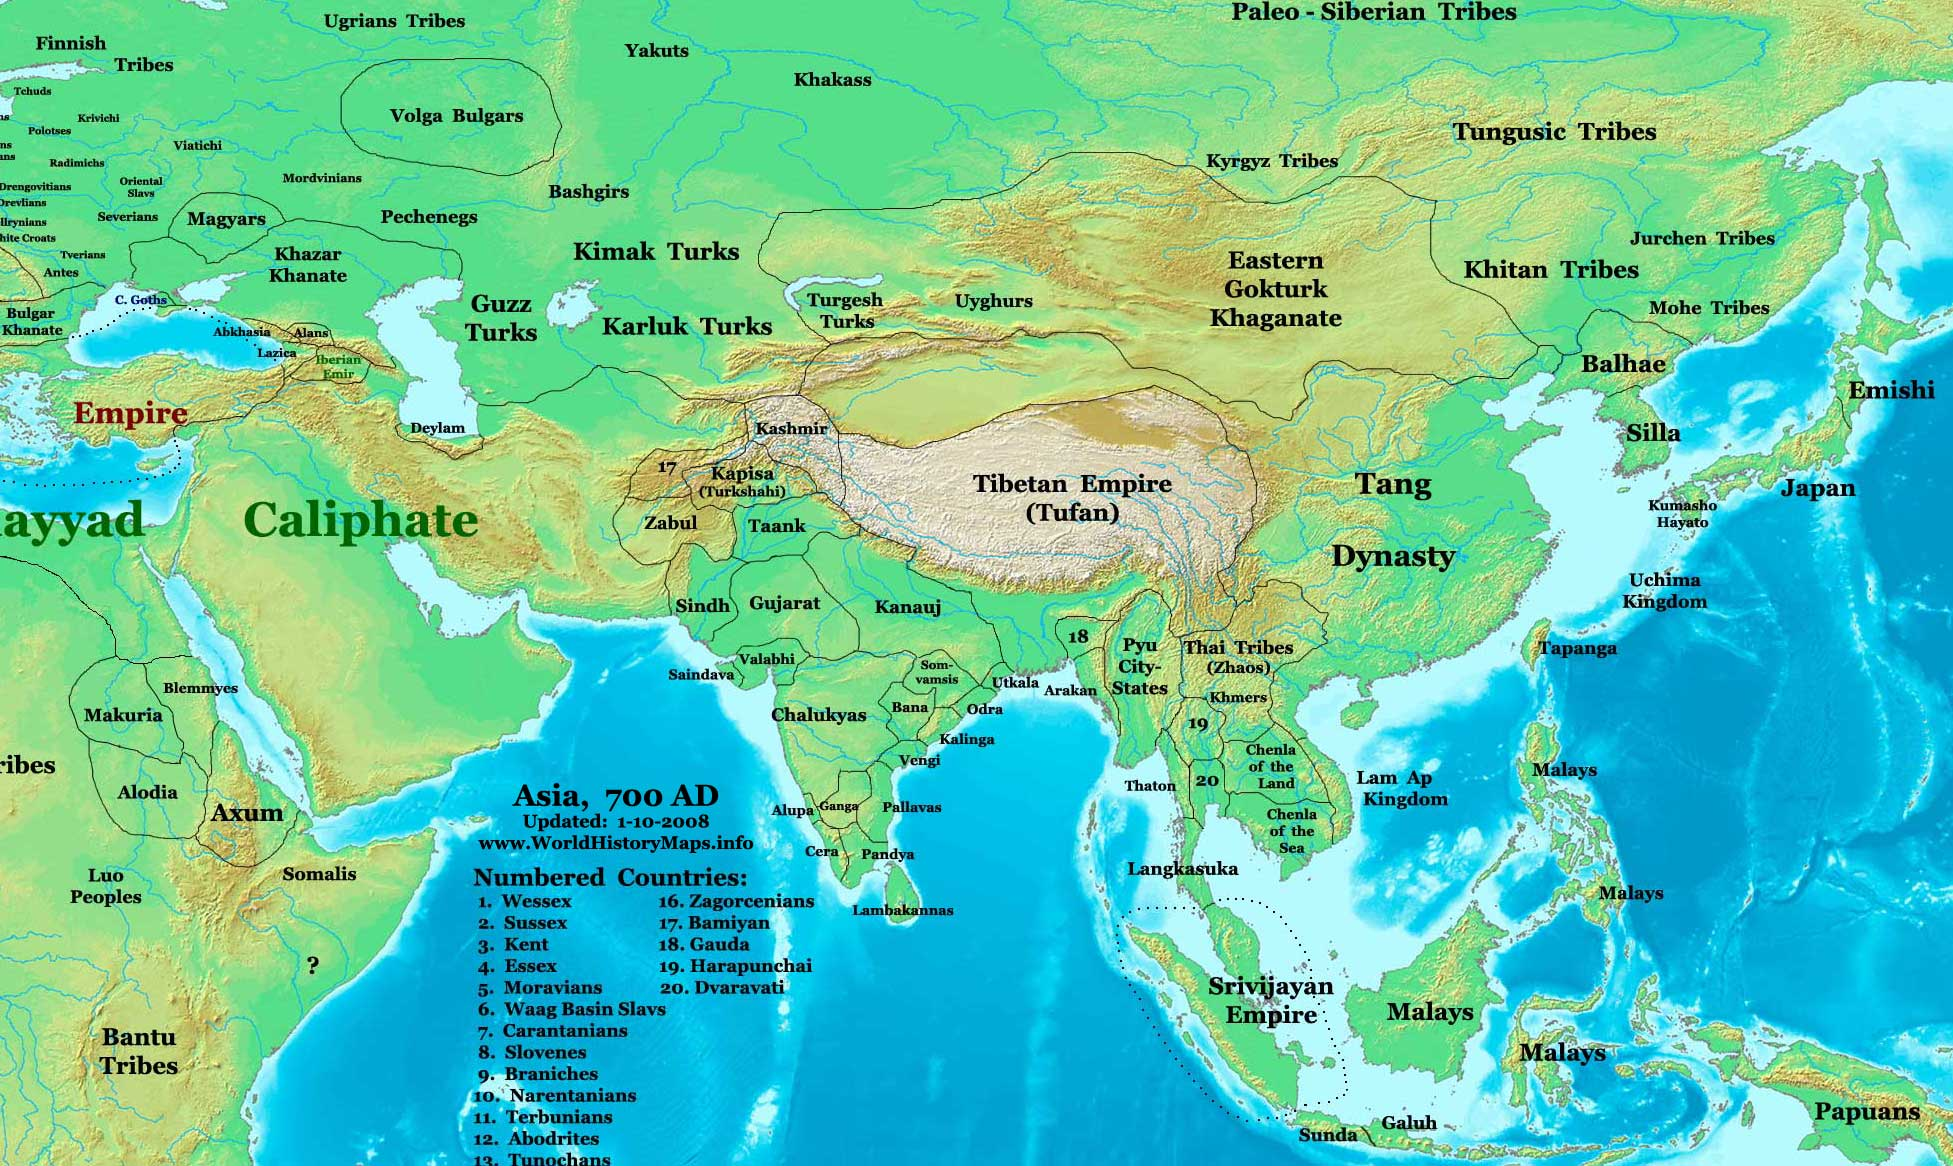 Map Of Asia In 700 Ad.File Asia 700ad Jpg Wikimedia Commons